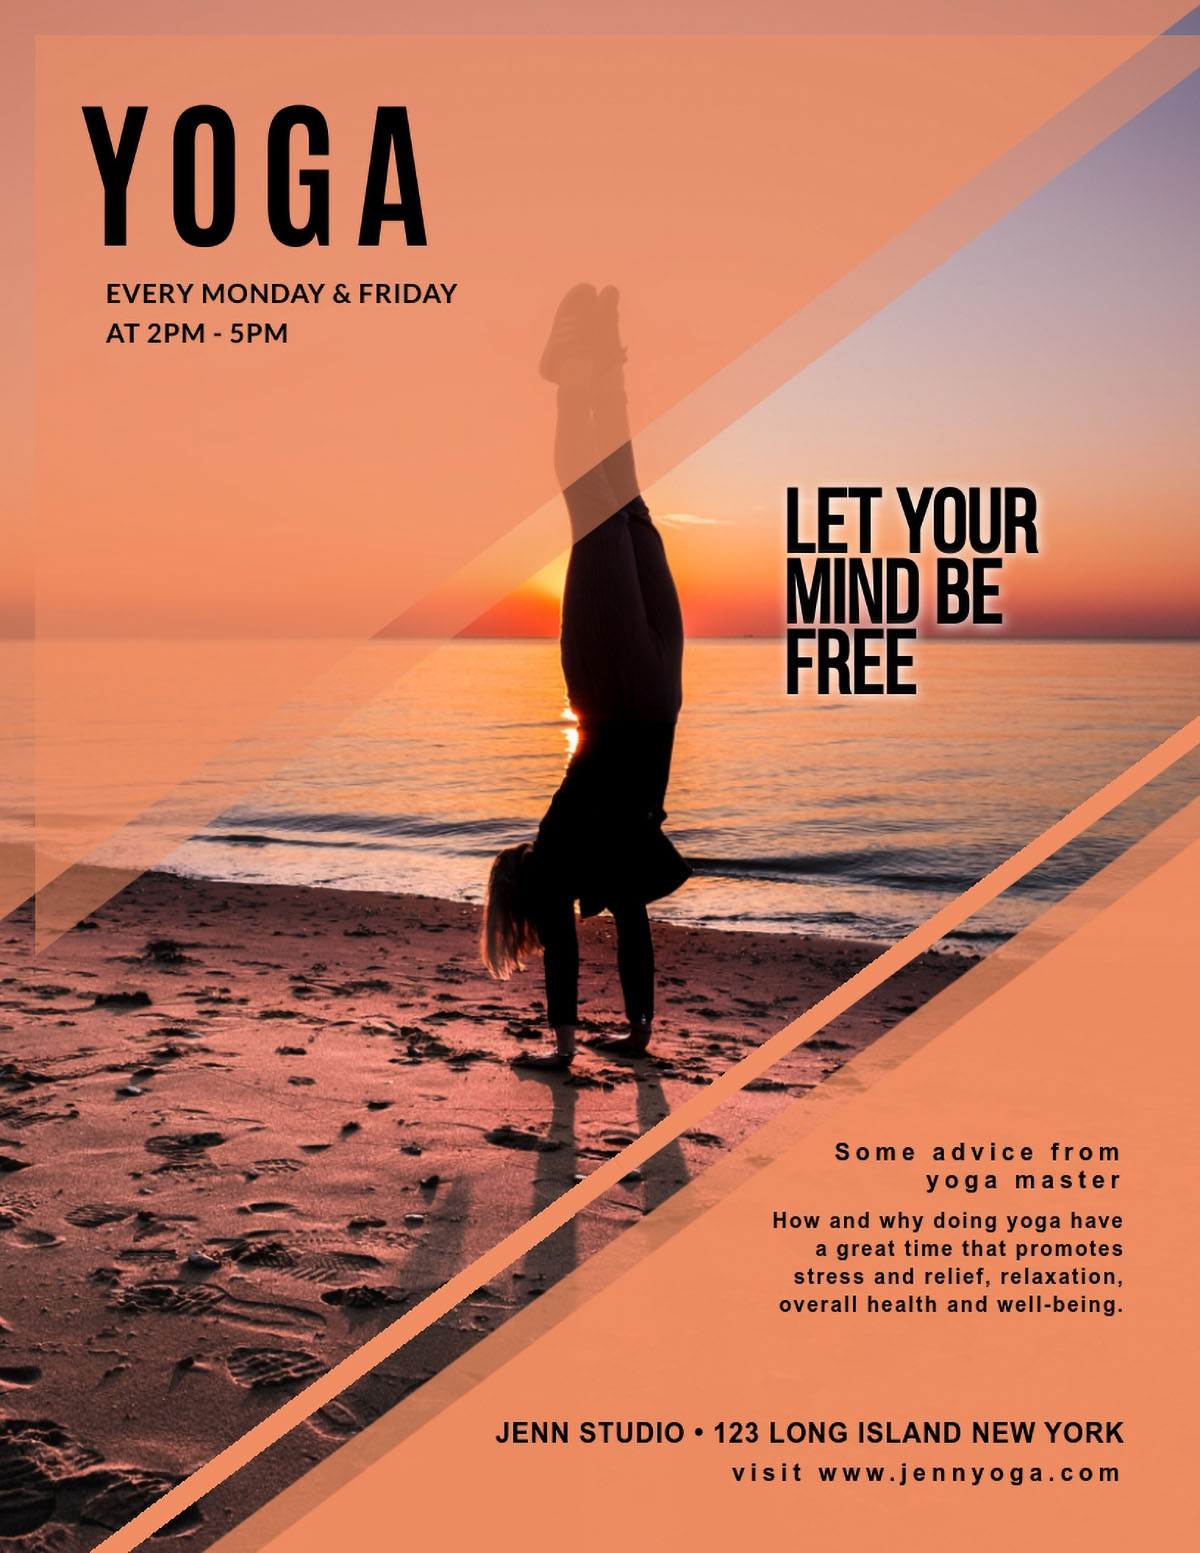 flyer design - yoga flyer template